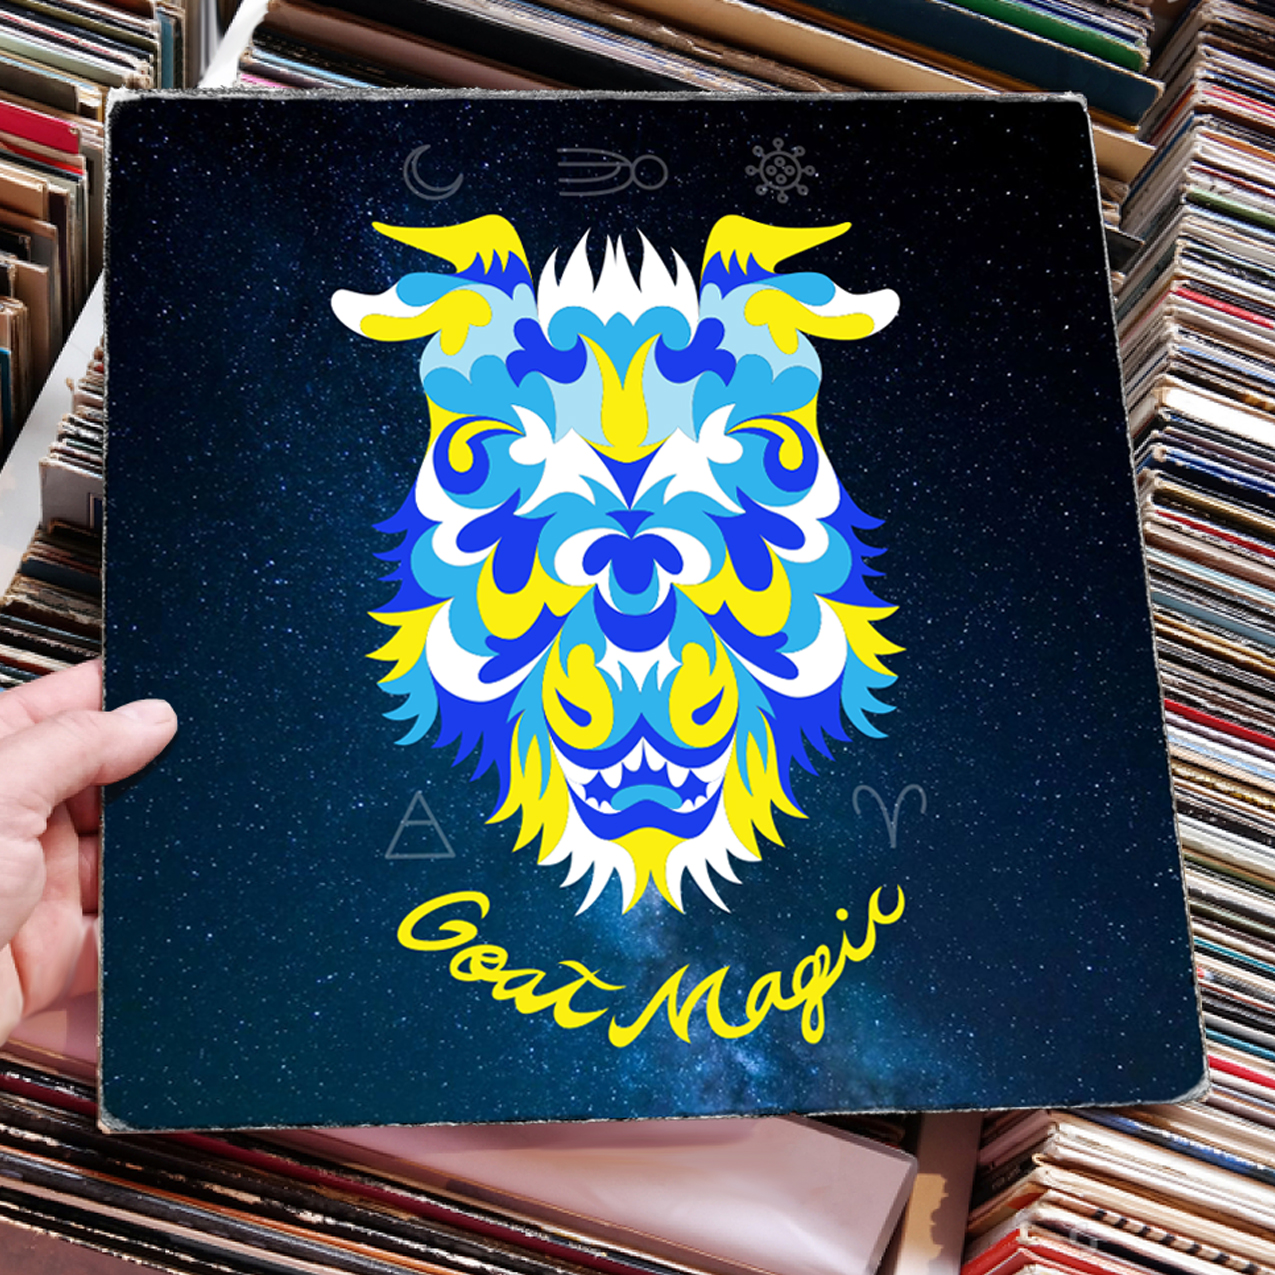 Goat Magic Record Cover Design